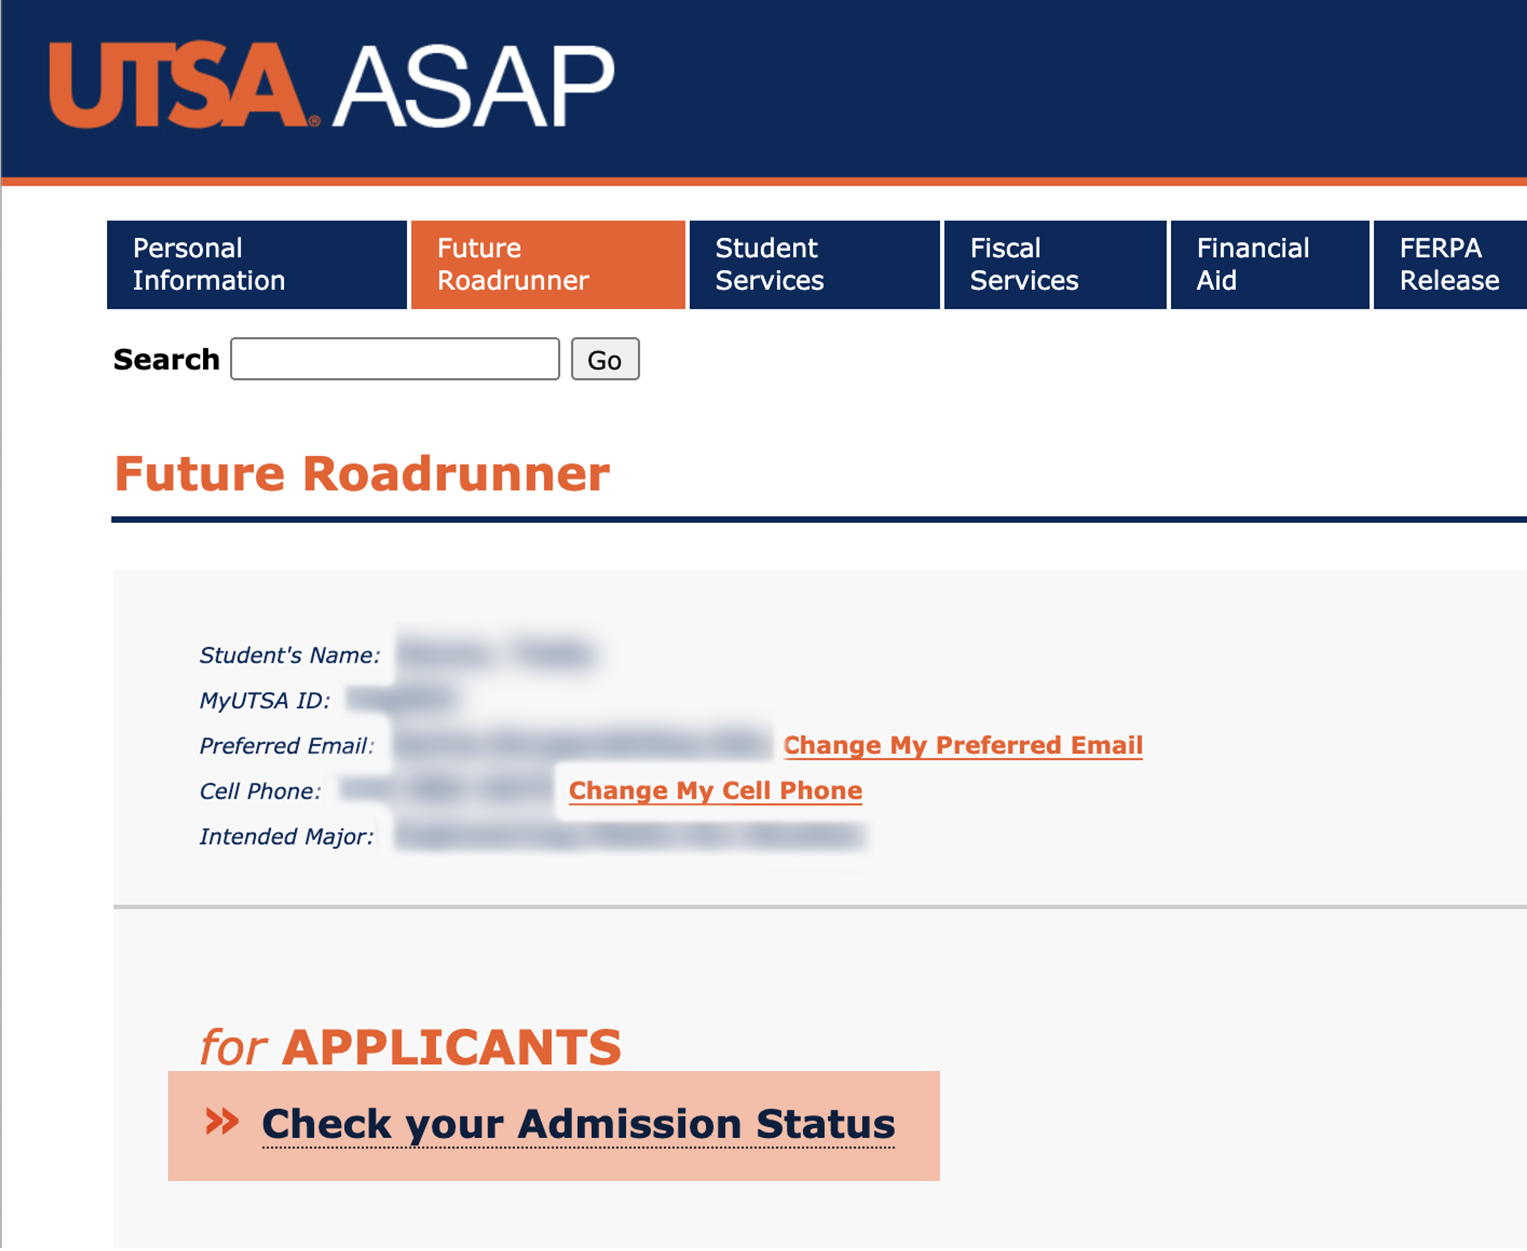 Select Check Your Admission Status